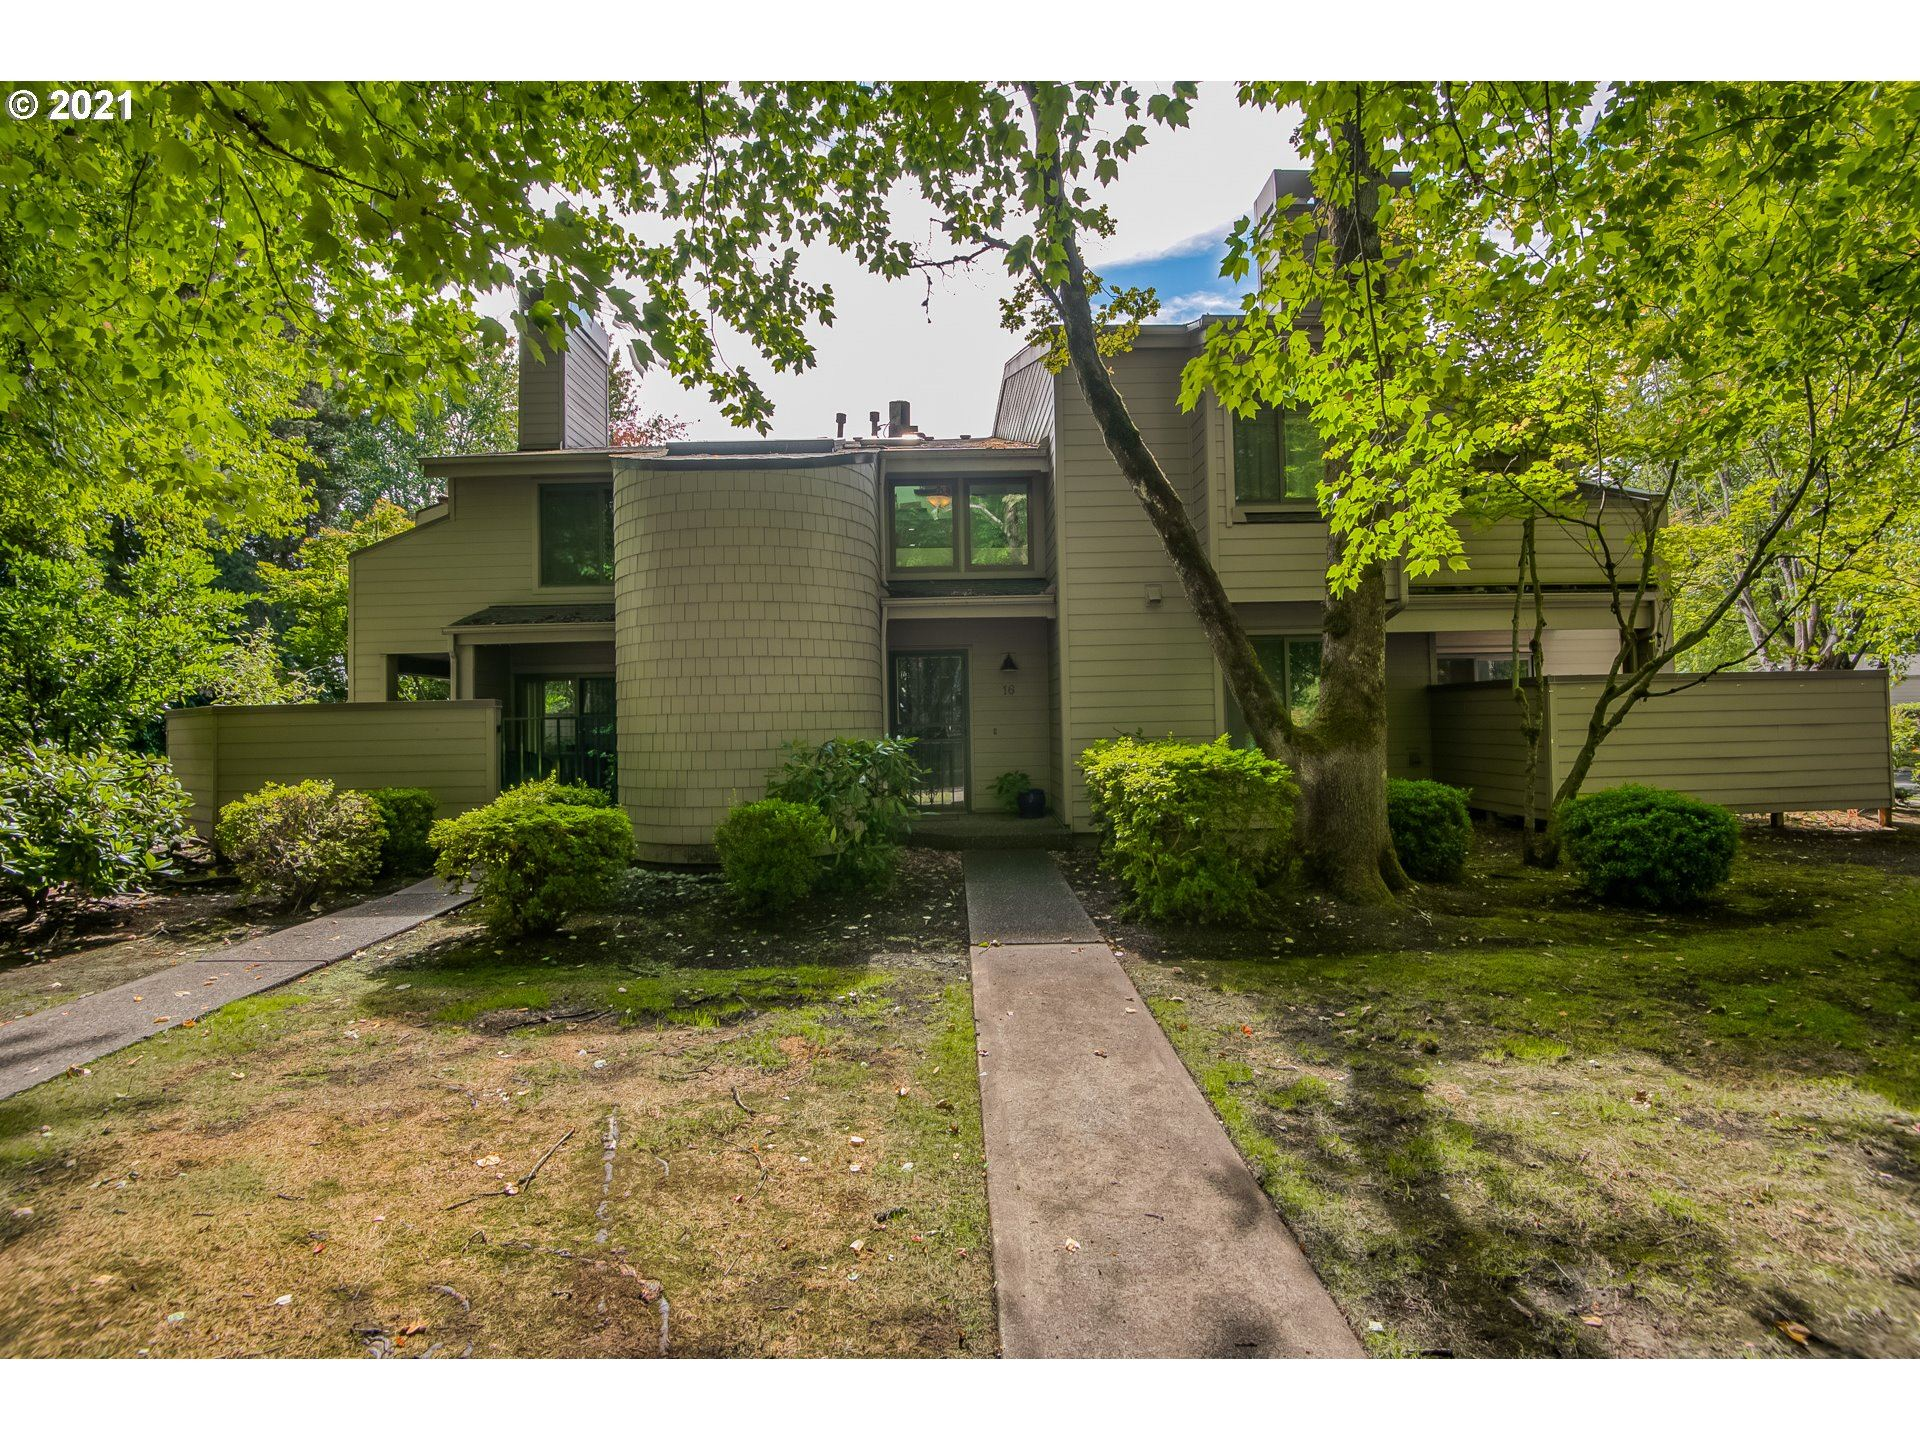 Photo of 1755 NW 143RD AVE #16, Portland, OR 97229 (MLS # 21606105)